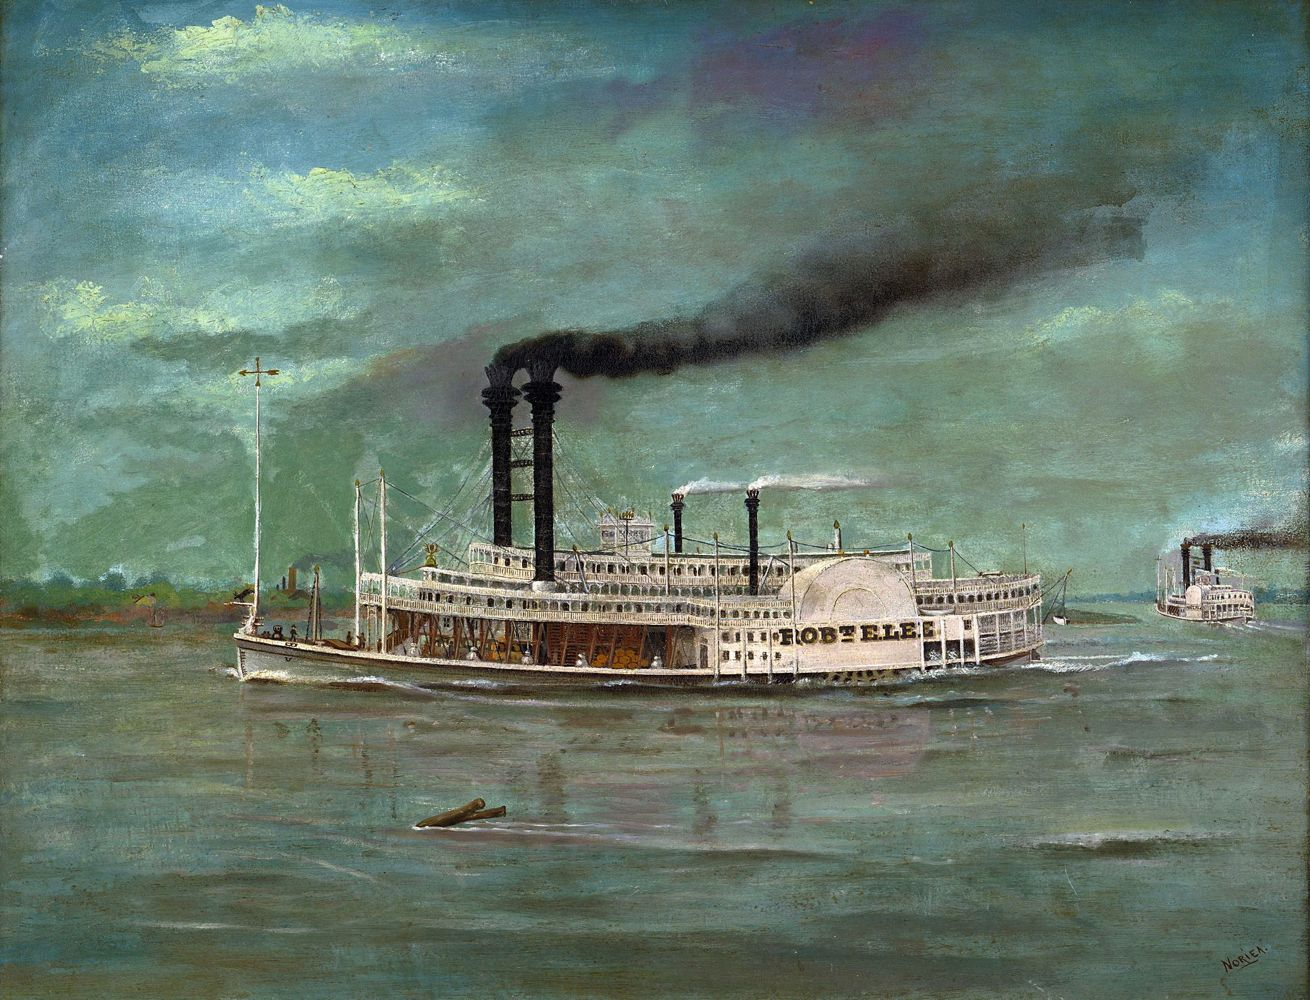 August_Norieri-Robert_E_Lee_Steamboat._1876_Baja